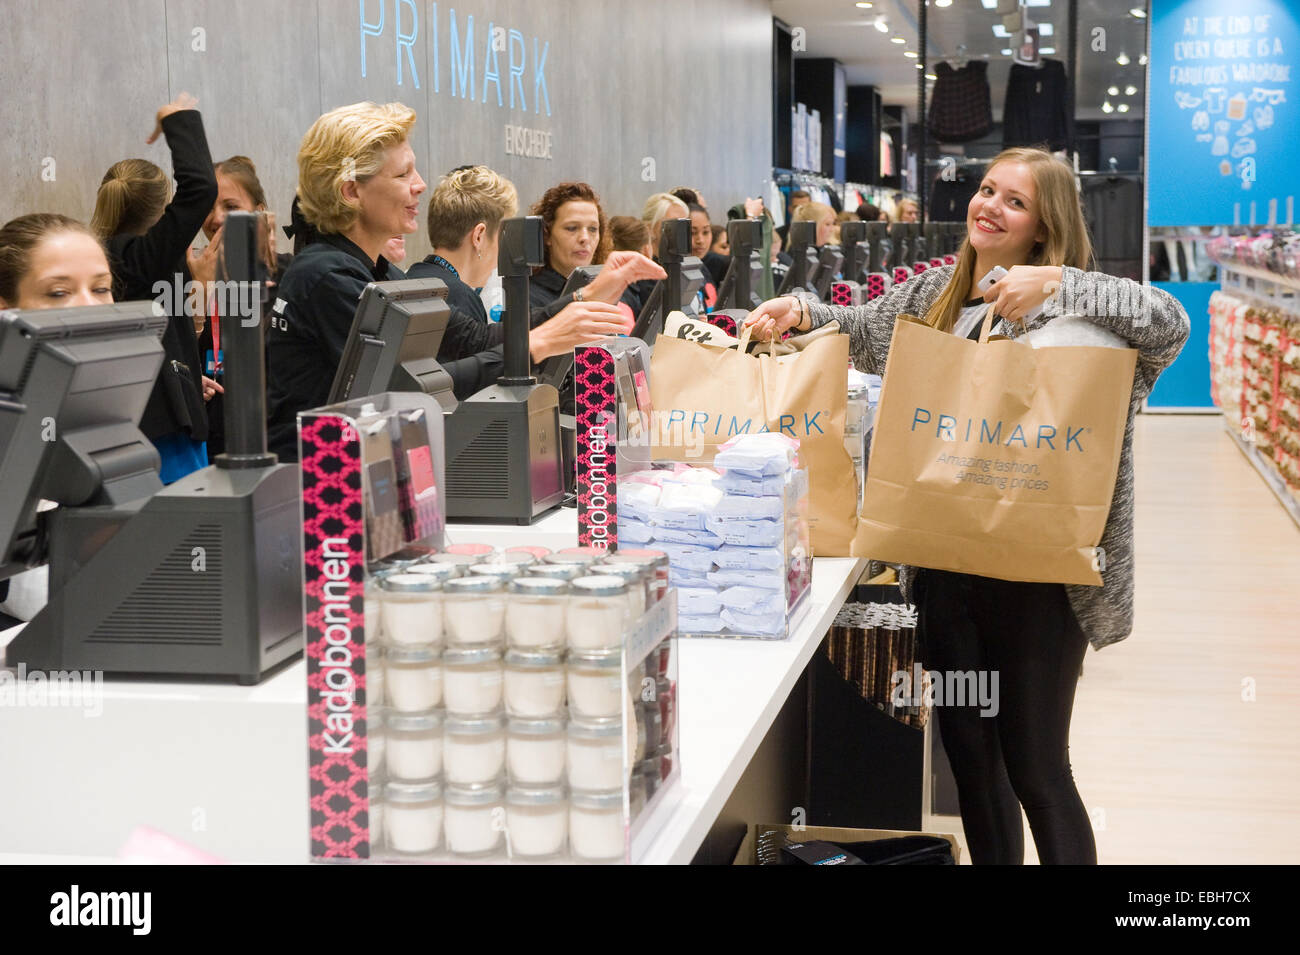 ENSCHEDE, NETHERLANDS -AUG 19, 2014: People are shopping in a new branch of warehouse Primark on the first day at - Stock Image